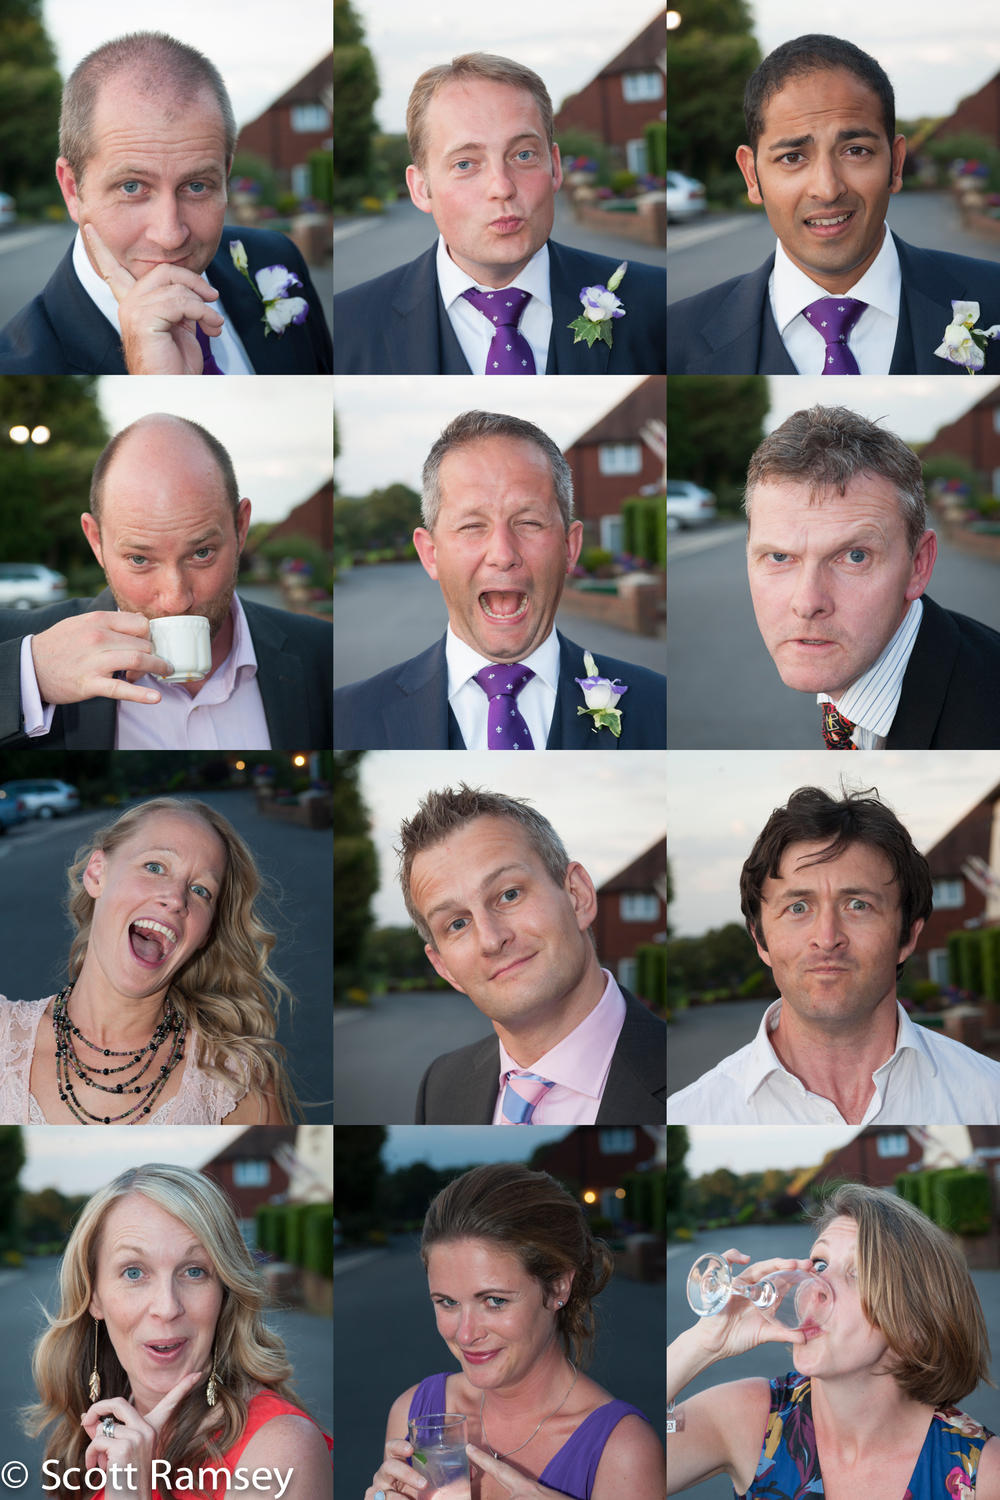 Create a fun photomontage of your wedding guests.